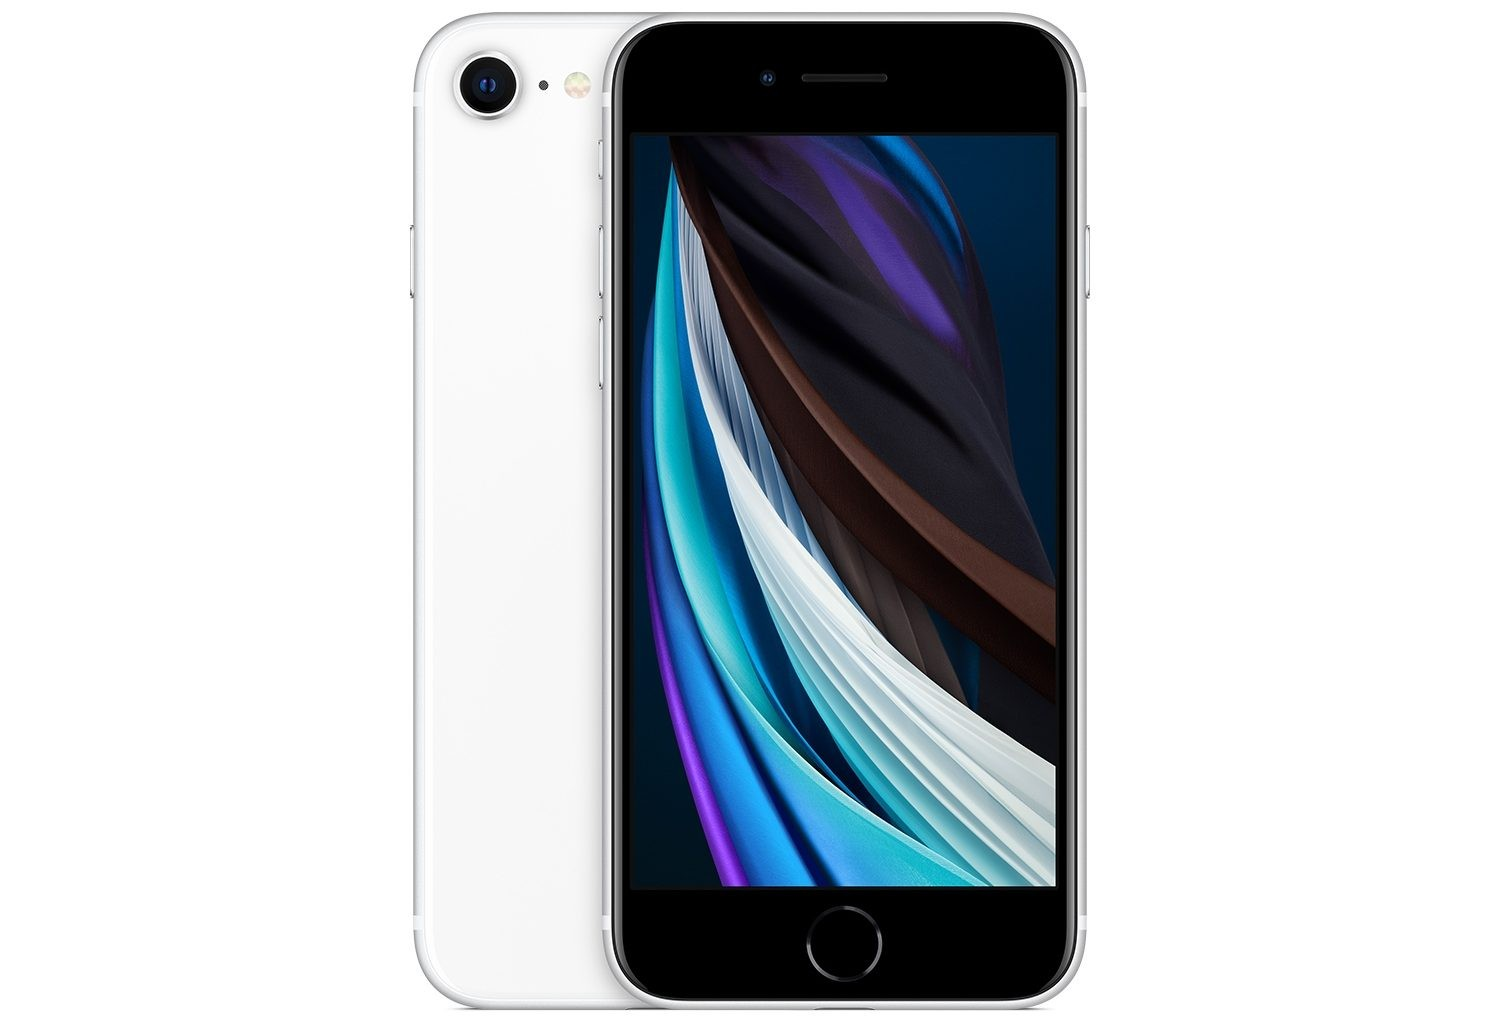 iPhone SE 64GB(第2世代)